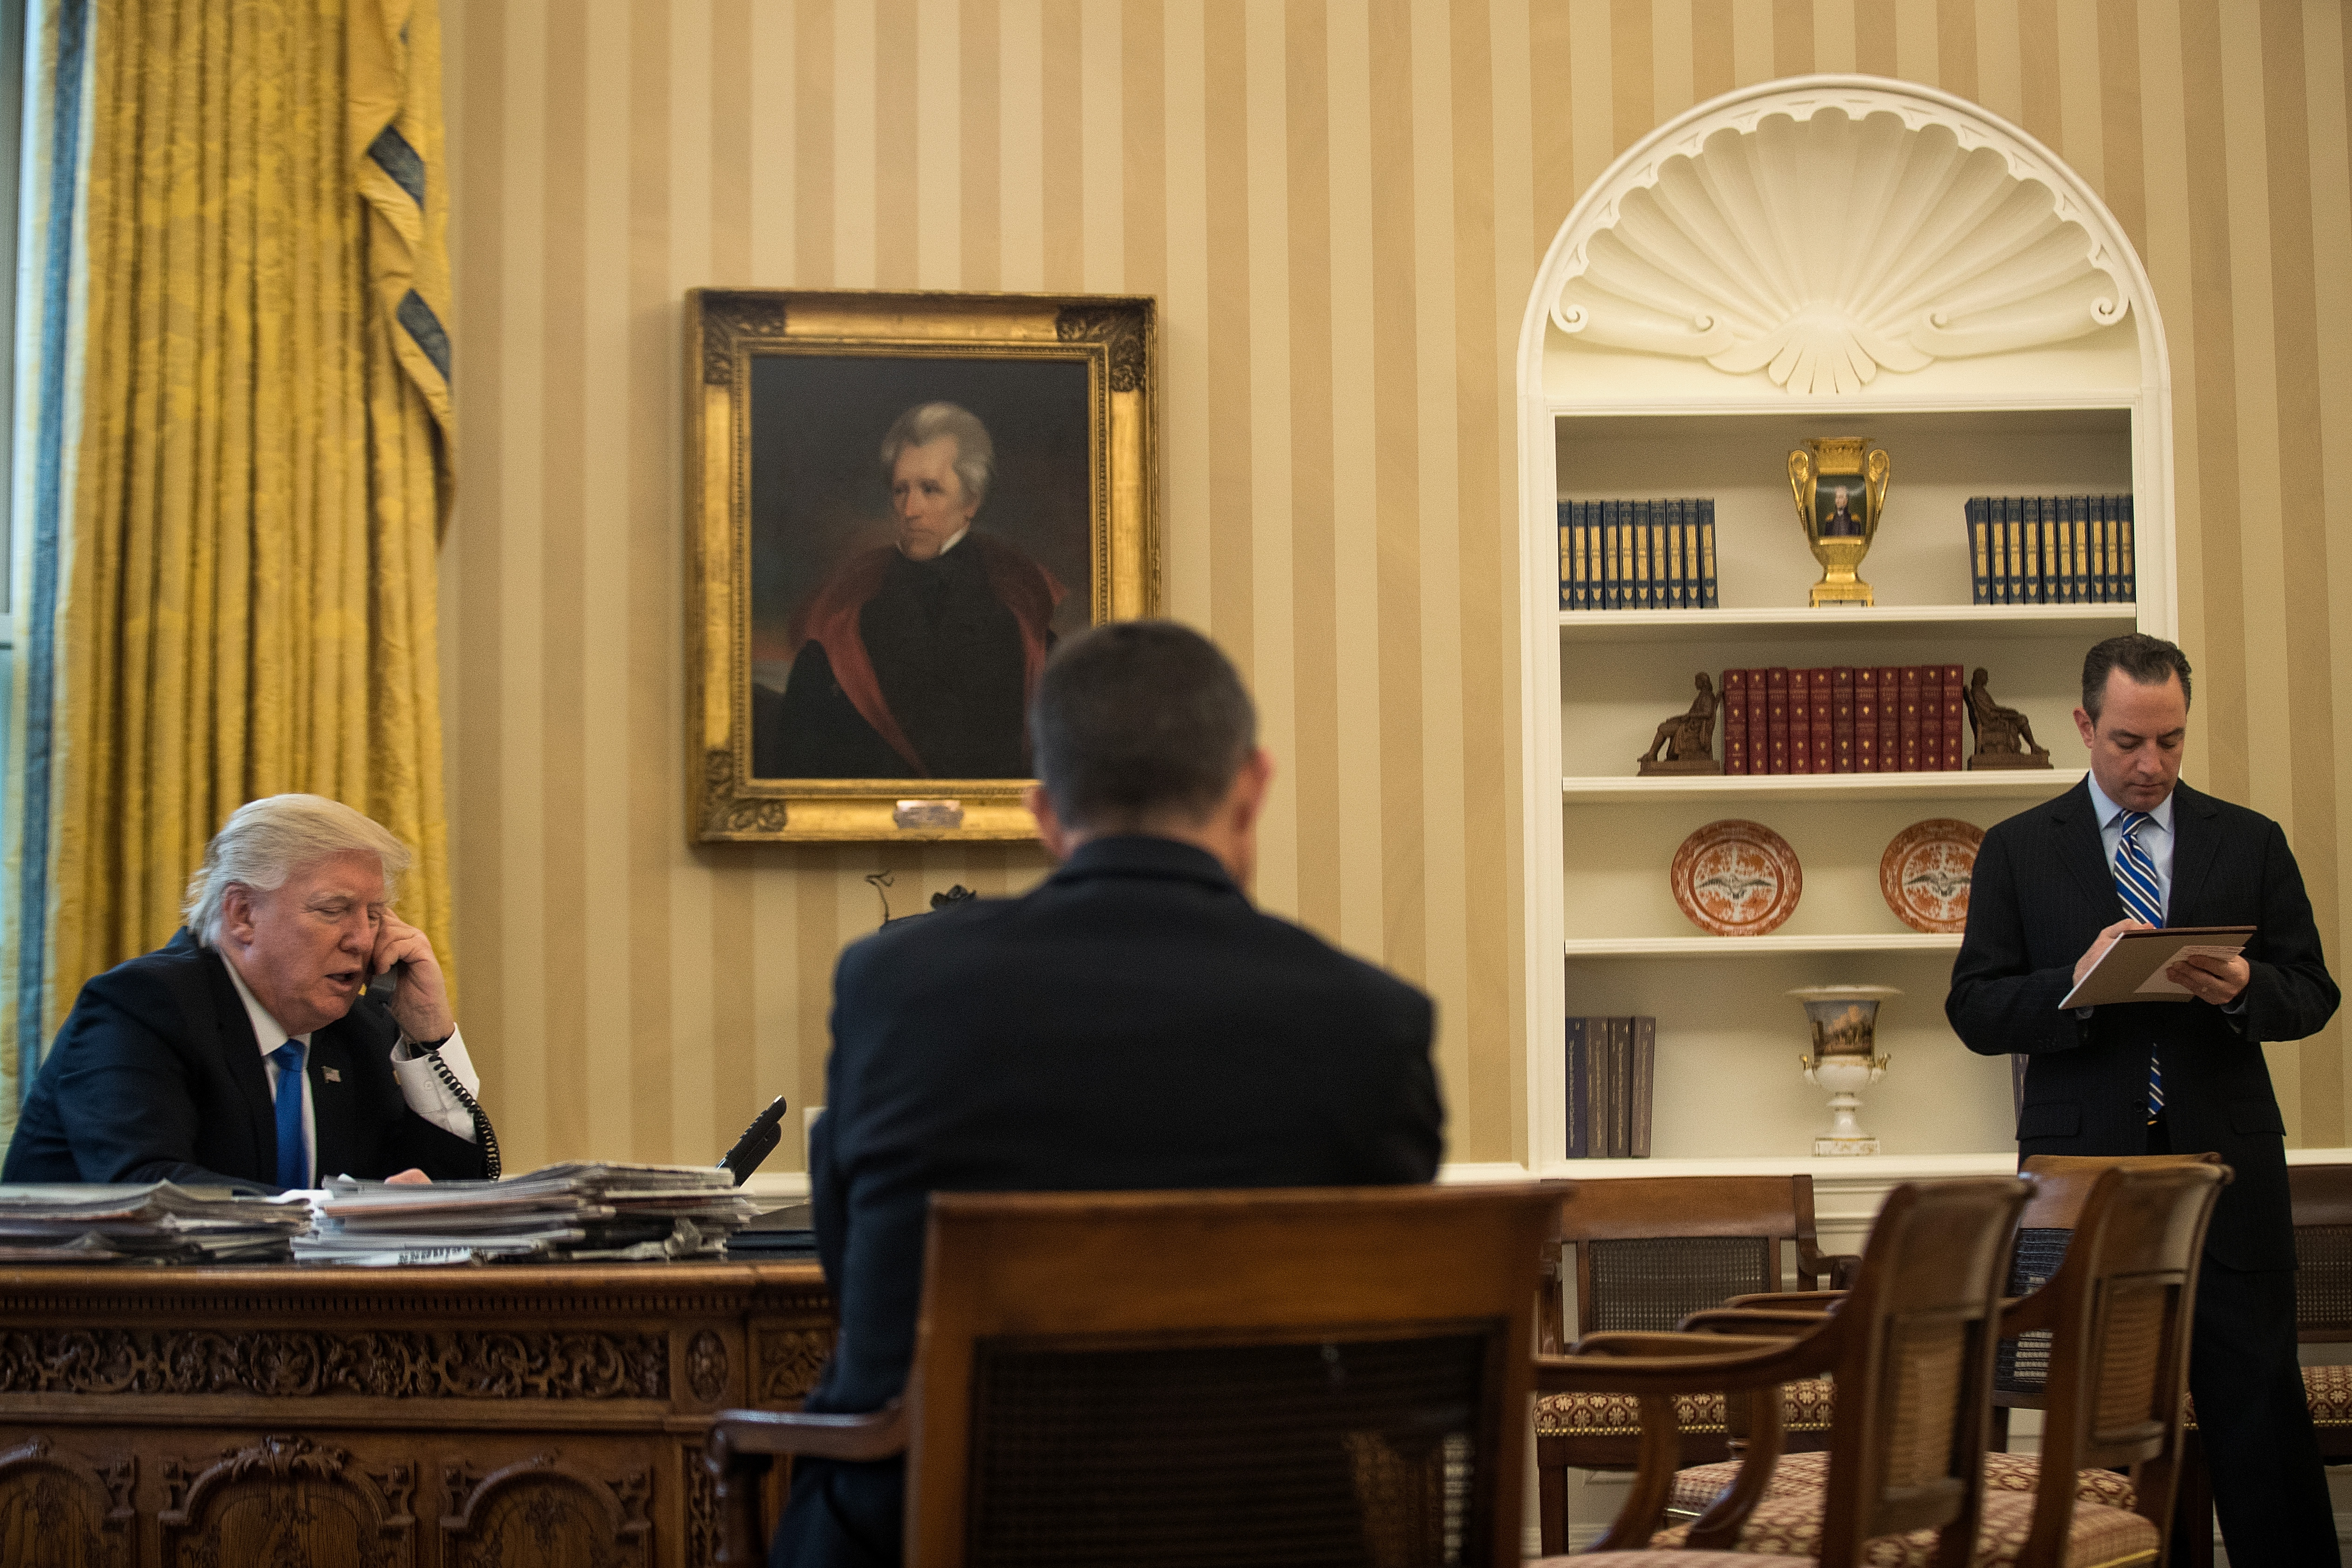 President Donald Trump speaks by phone with Chancellor of Germany Angela Merkel in the Oval Office of the White House, January 28, 2017 in Washington, DC. Merkel's meeting at the White House has been postponed to Friday March 17 because of weather.